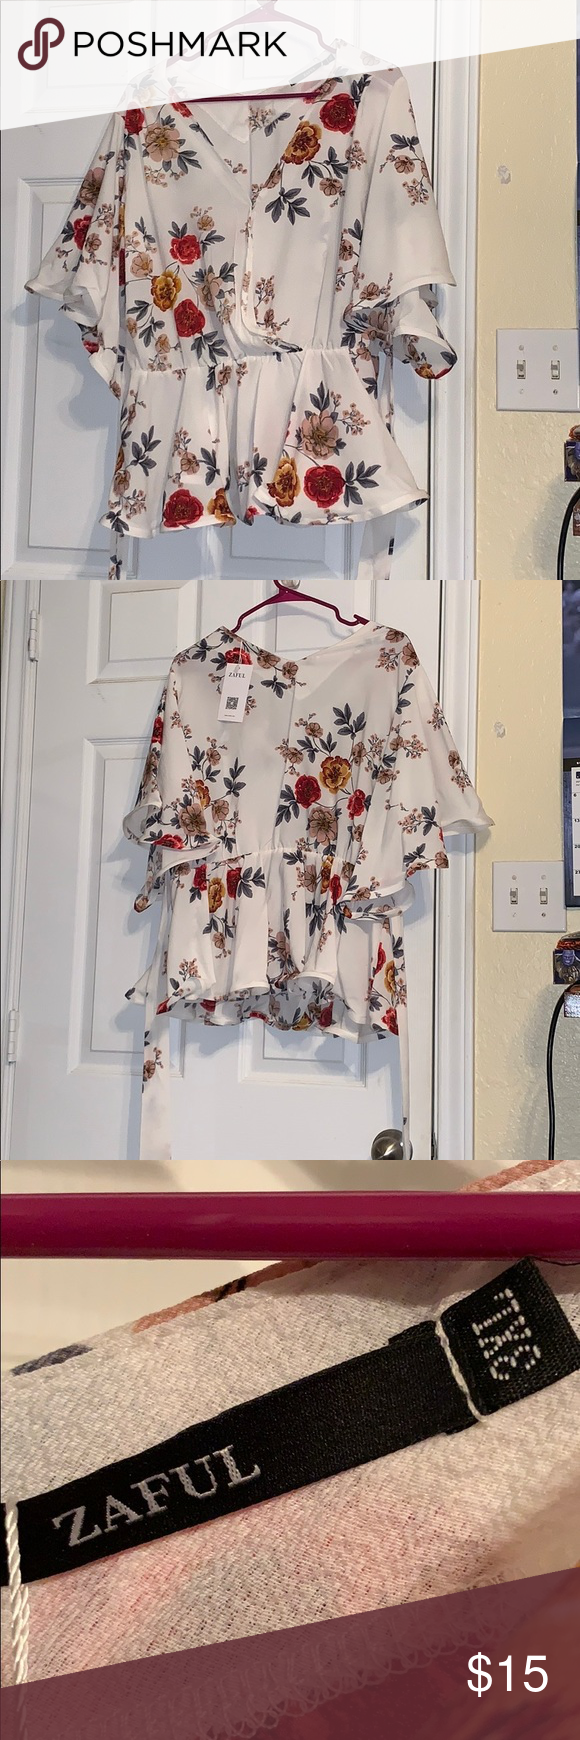 ca6cdb73439 Brand new flowy 3XL flower top. From one of those Chinese sites like ...